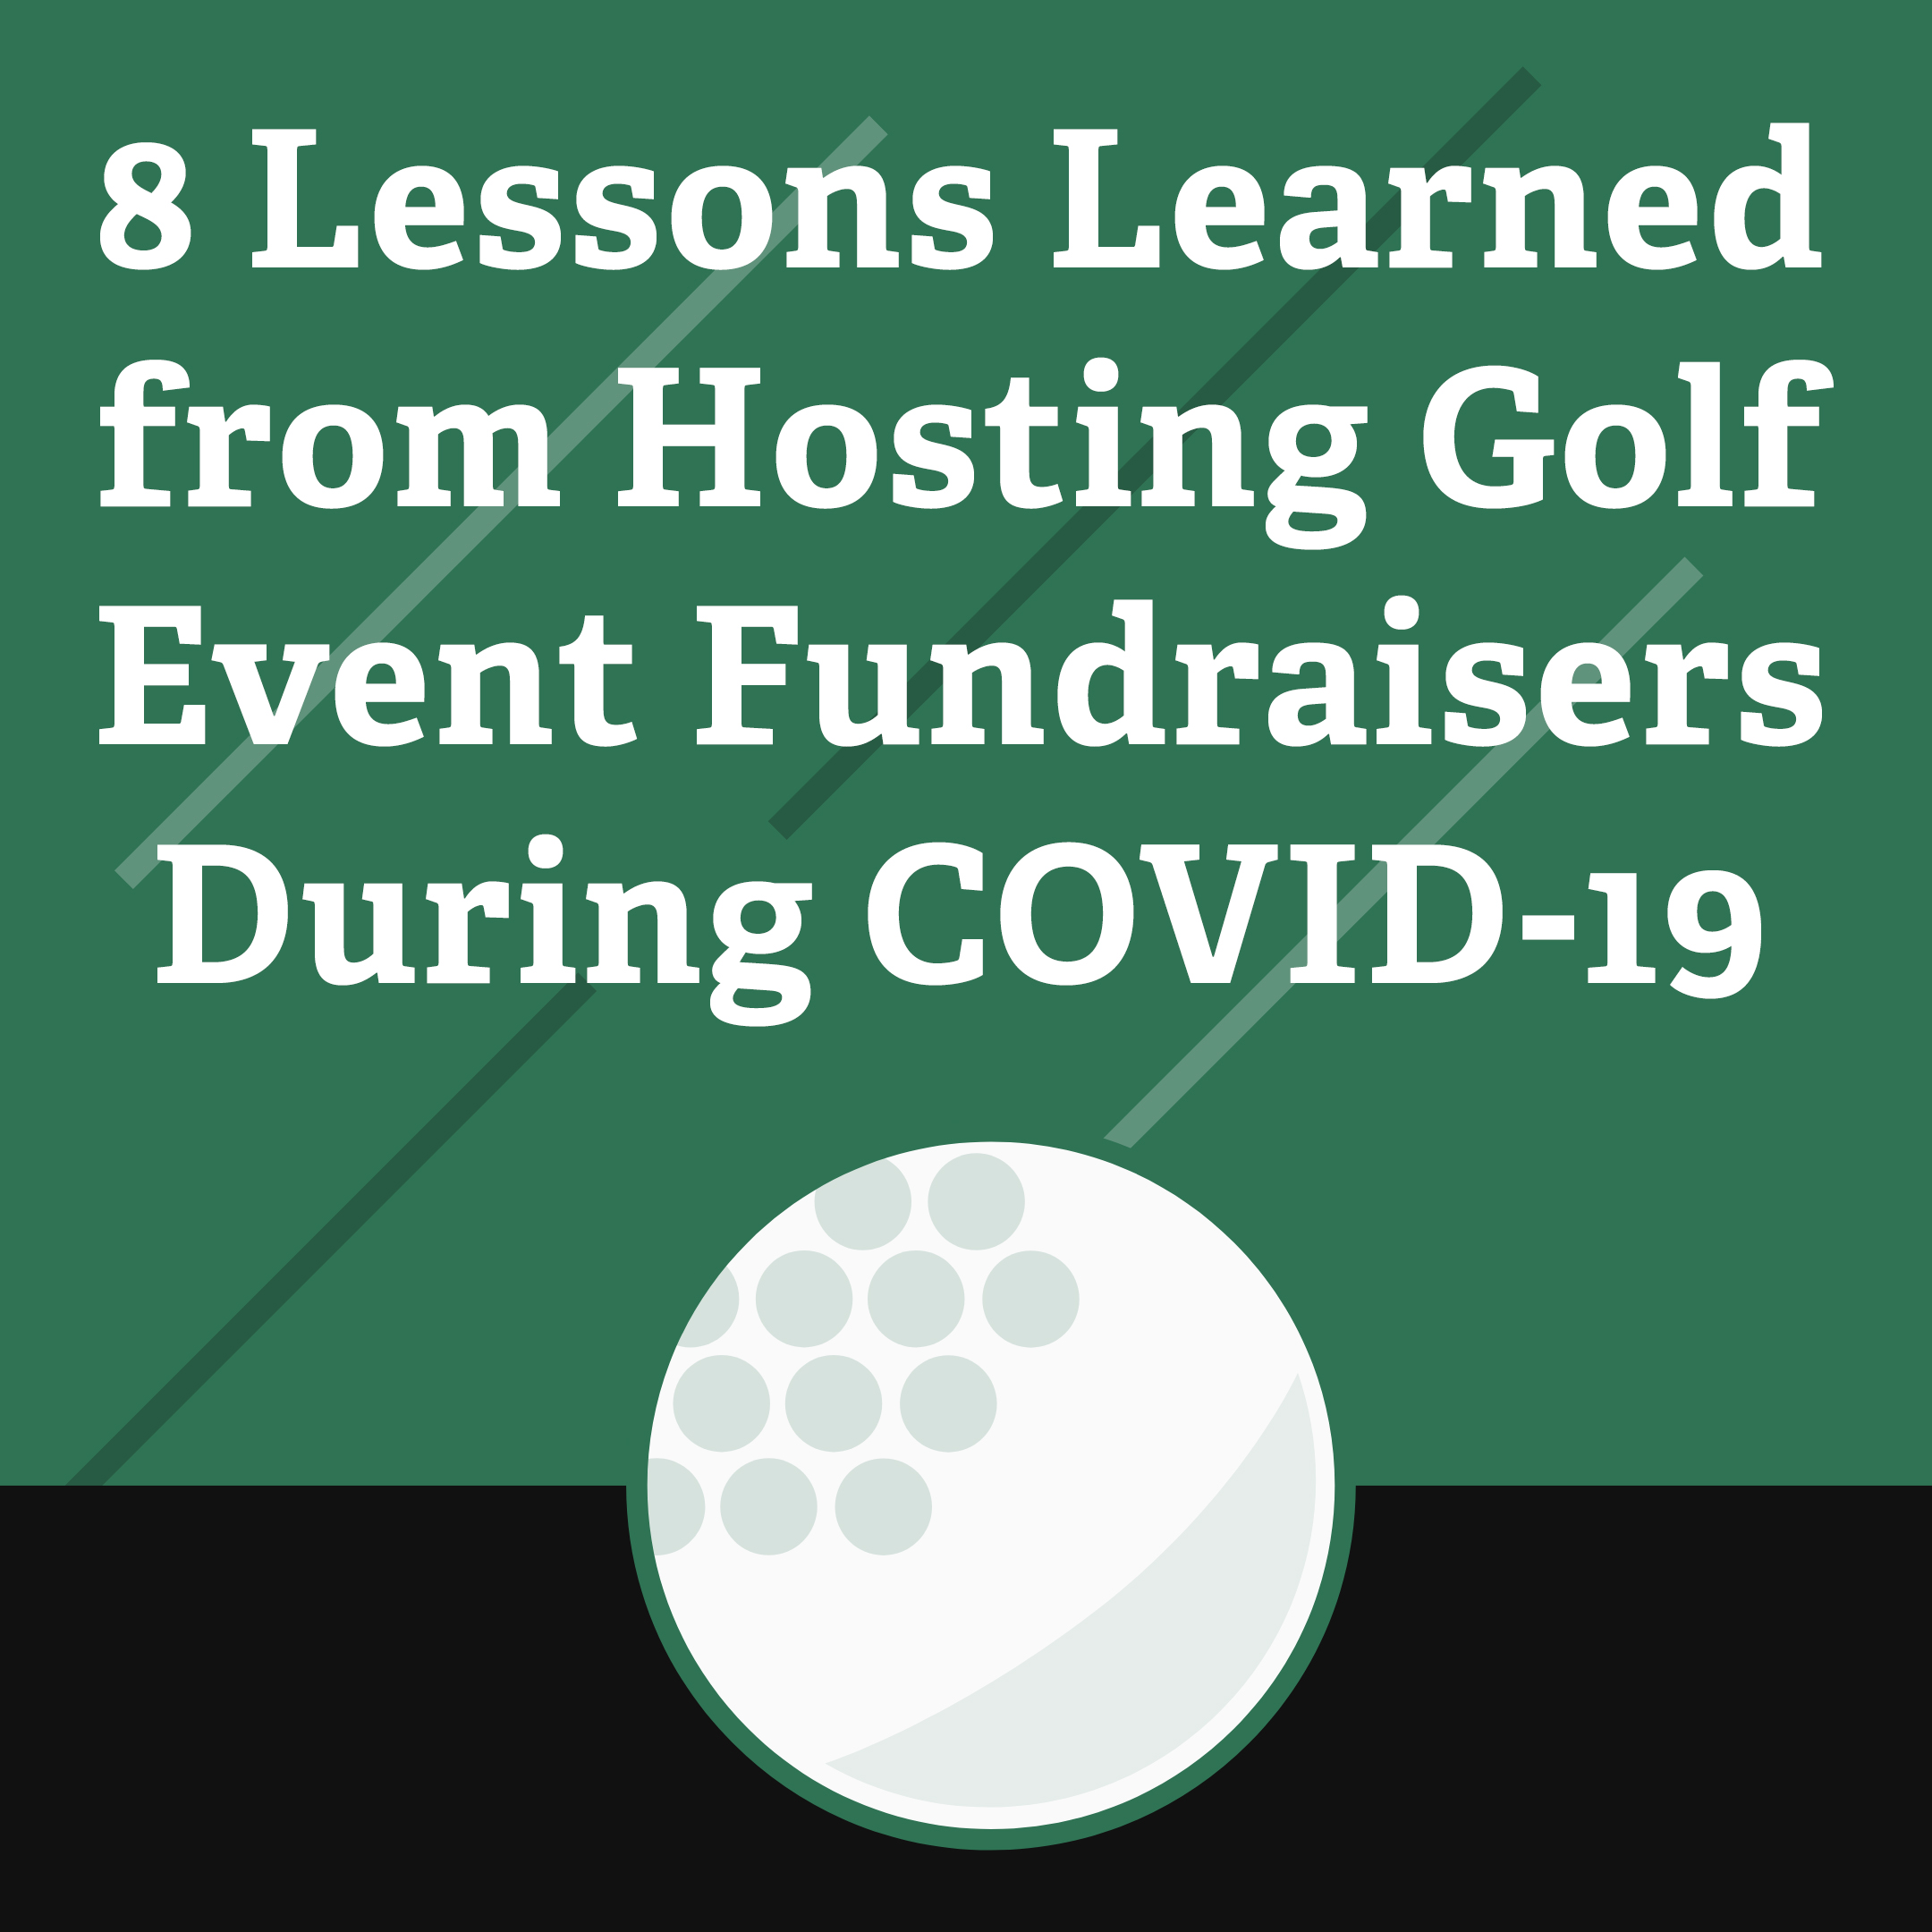 8 Lessons Learned from Hosting Golf Event Fundraisers During COVID-19